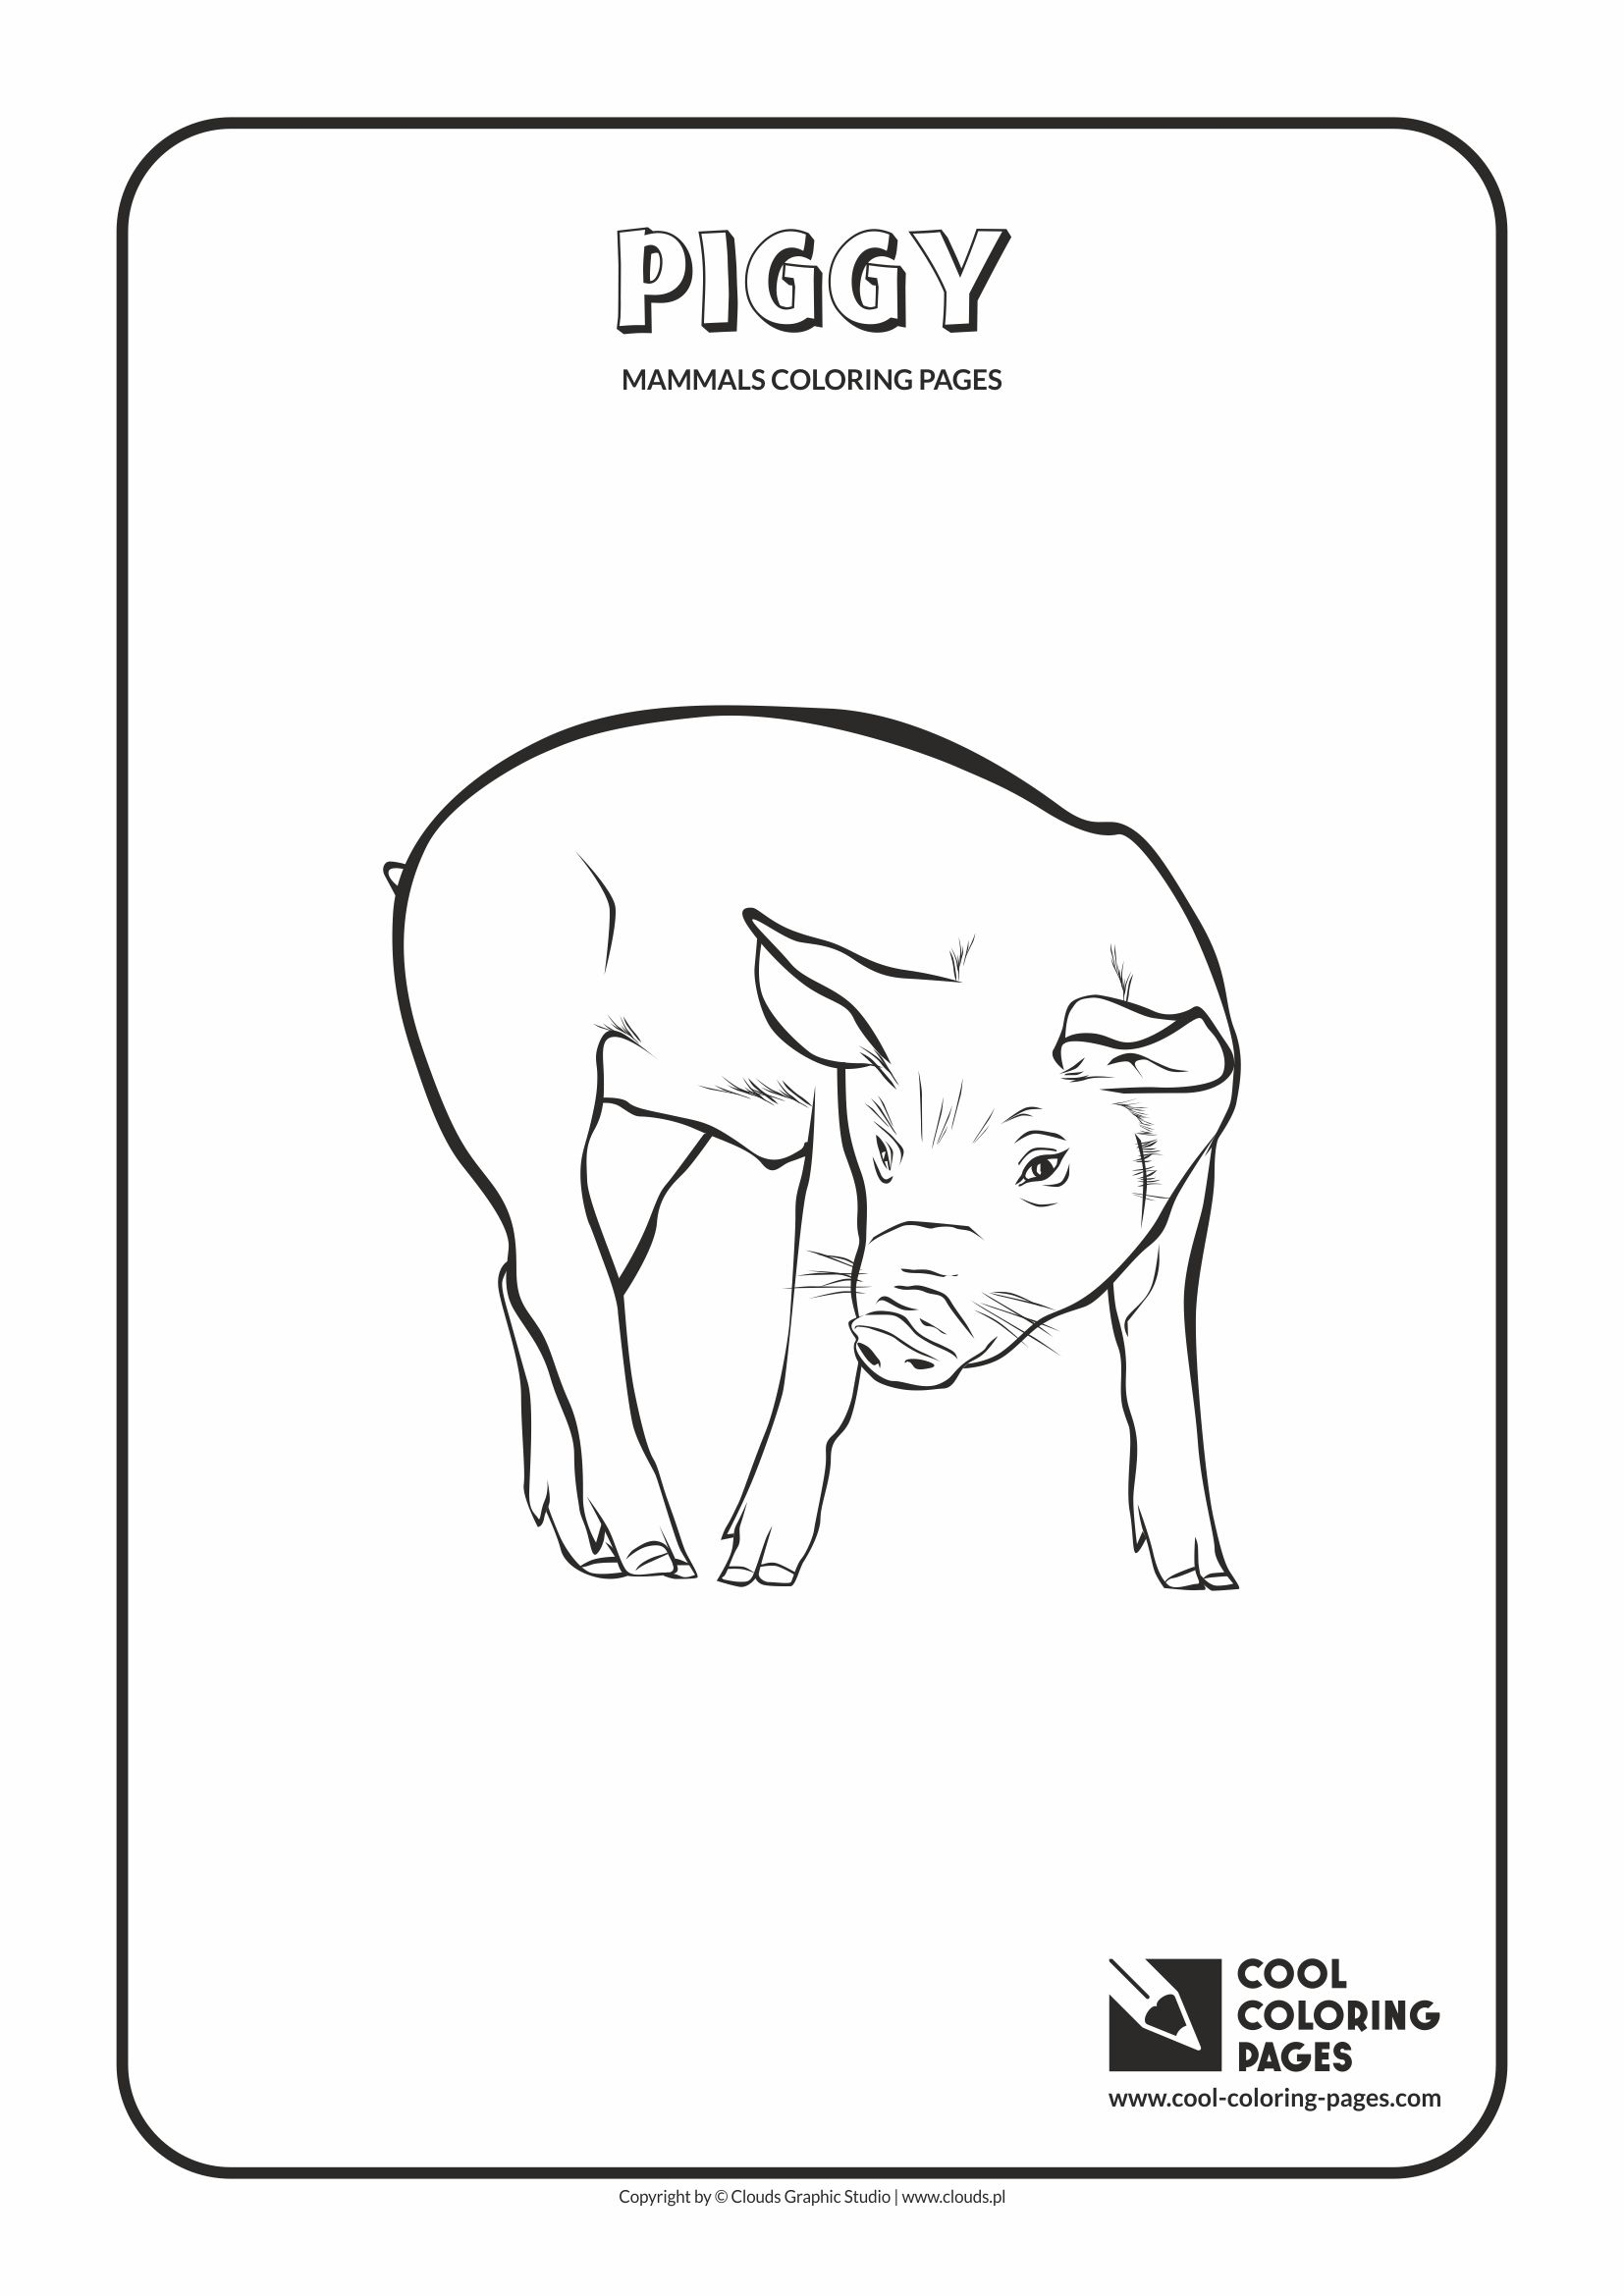 >Cool Coloring Pages - Animals / Piggy / Coloring page with piggy